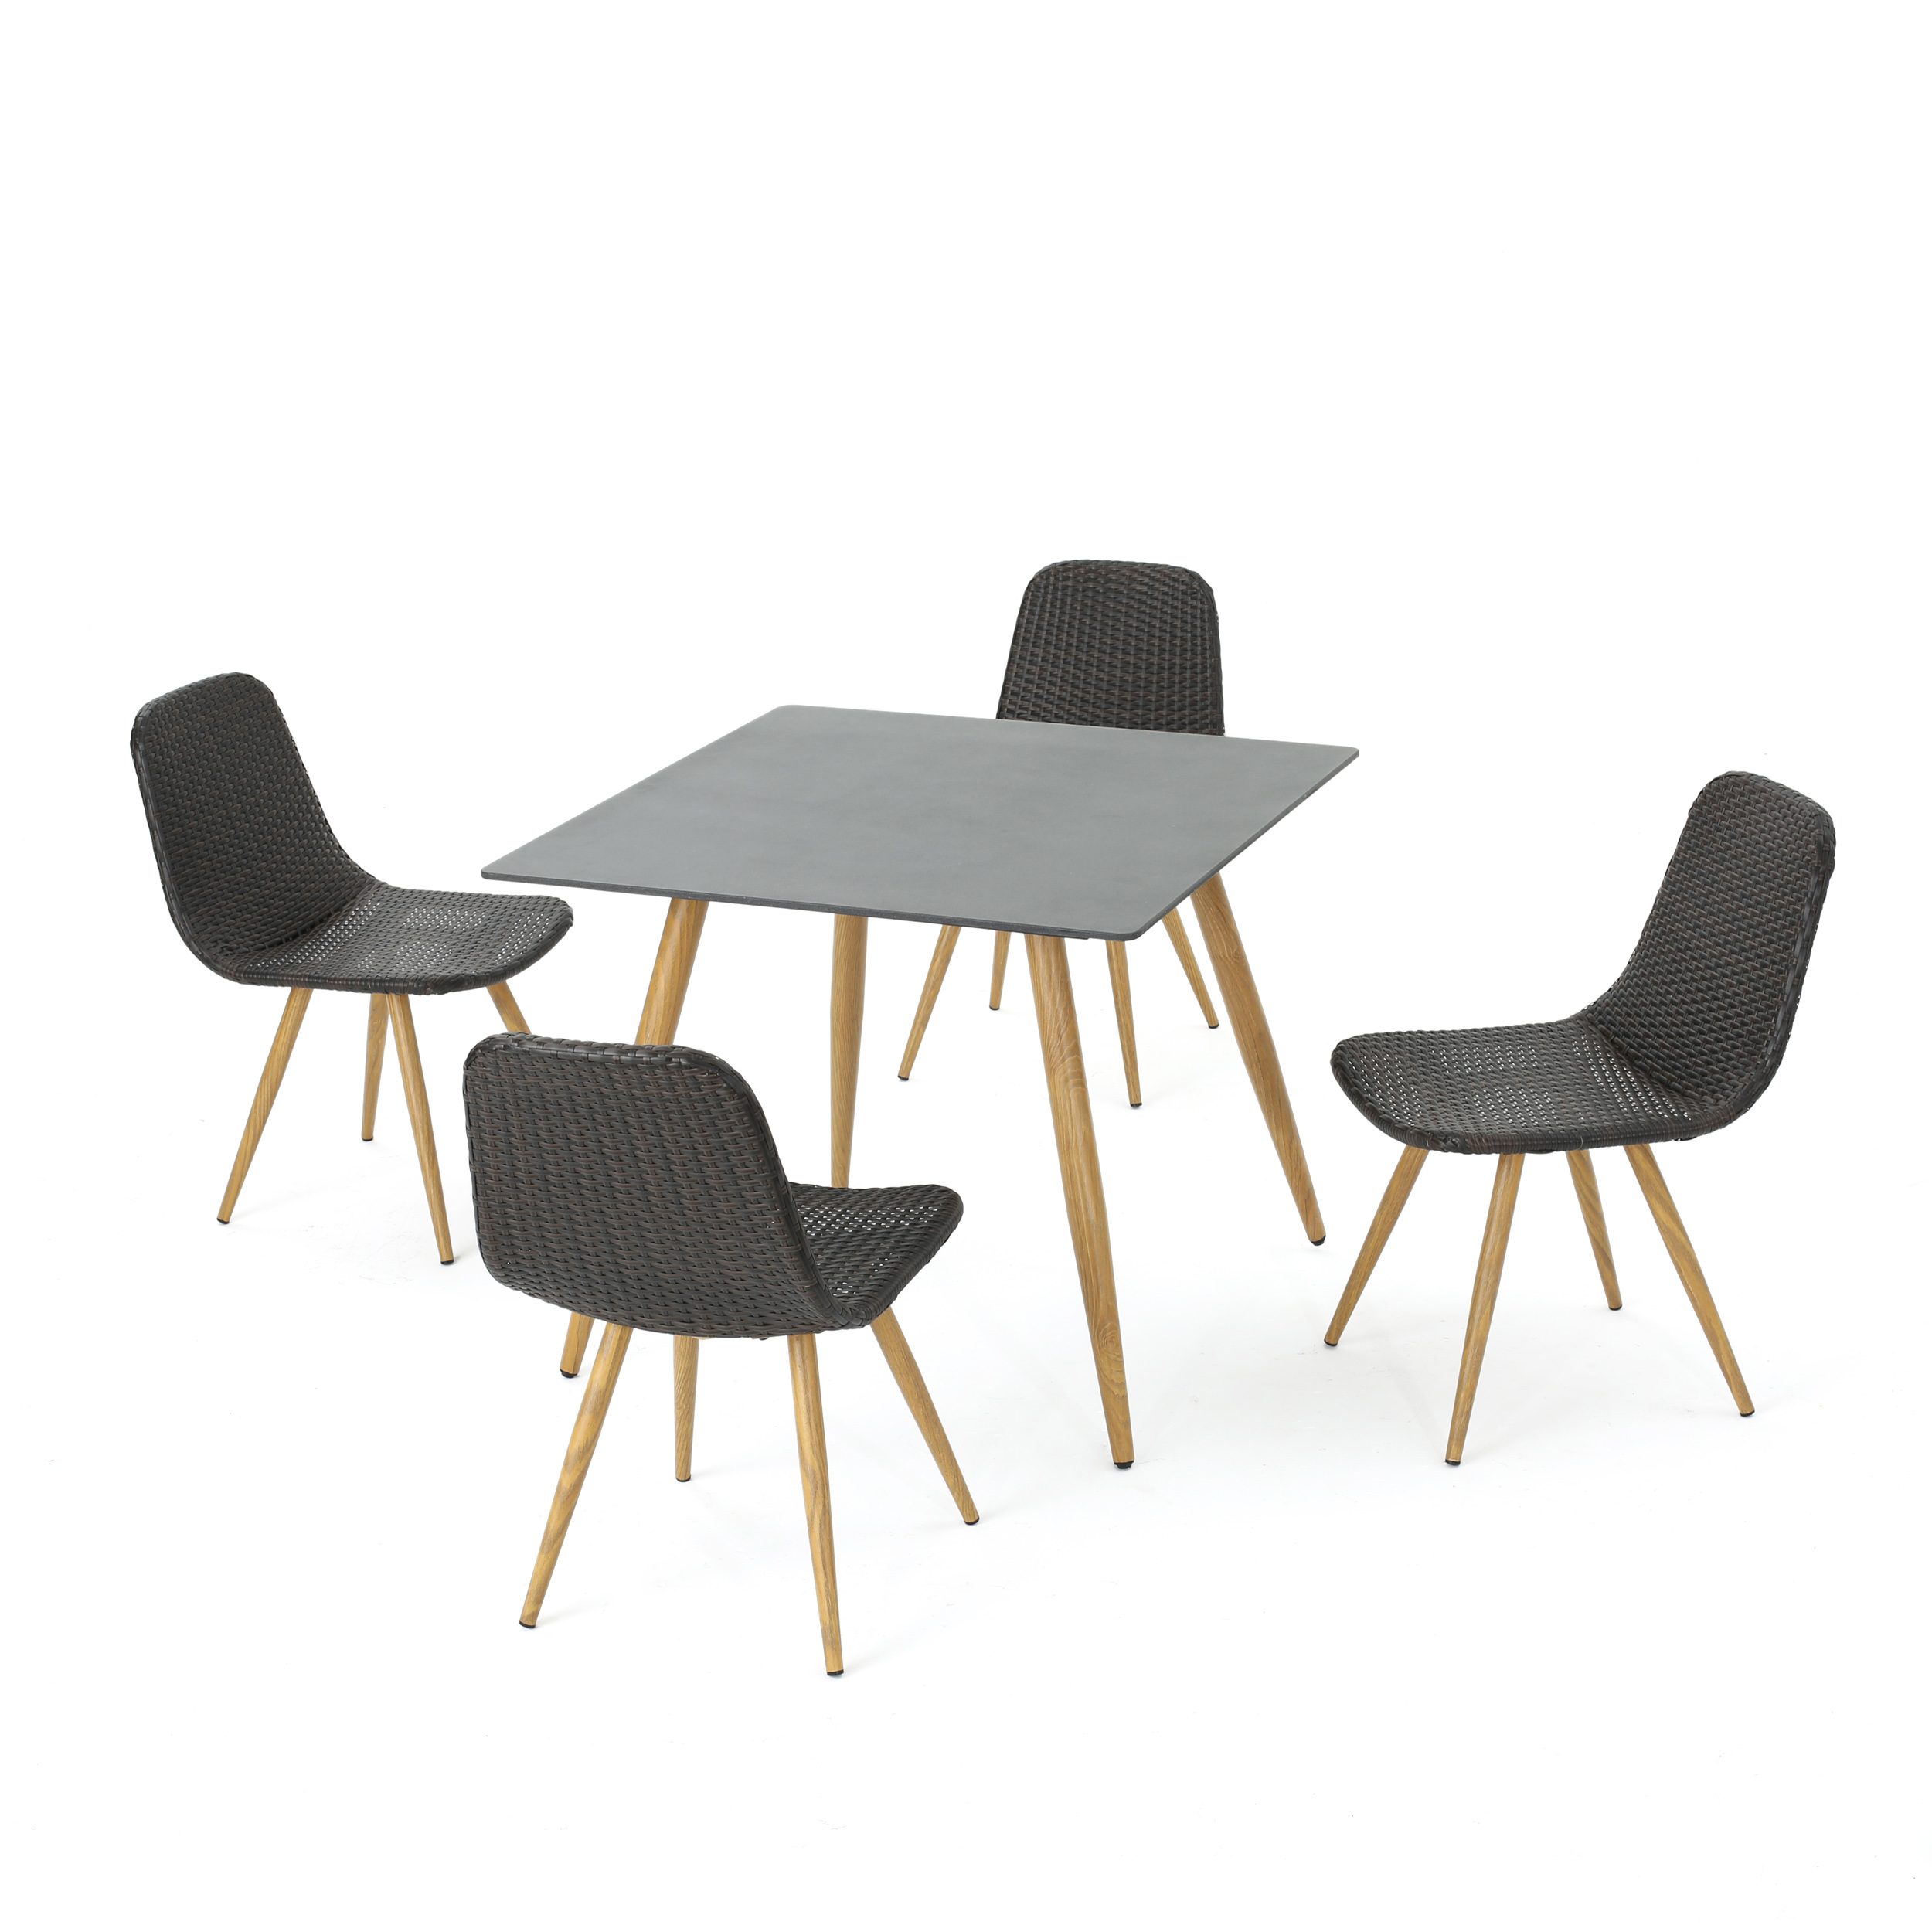 Gilda Outdoor 5 Piece Wicker Square Dining Set with Tempered Glass Table Top, Multibrown and Light Brown